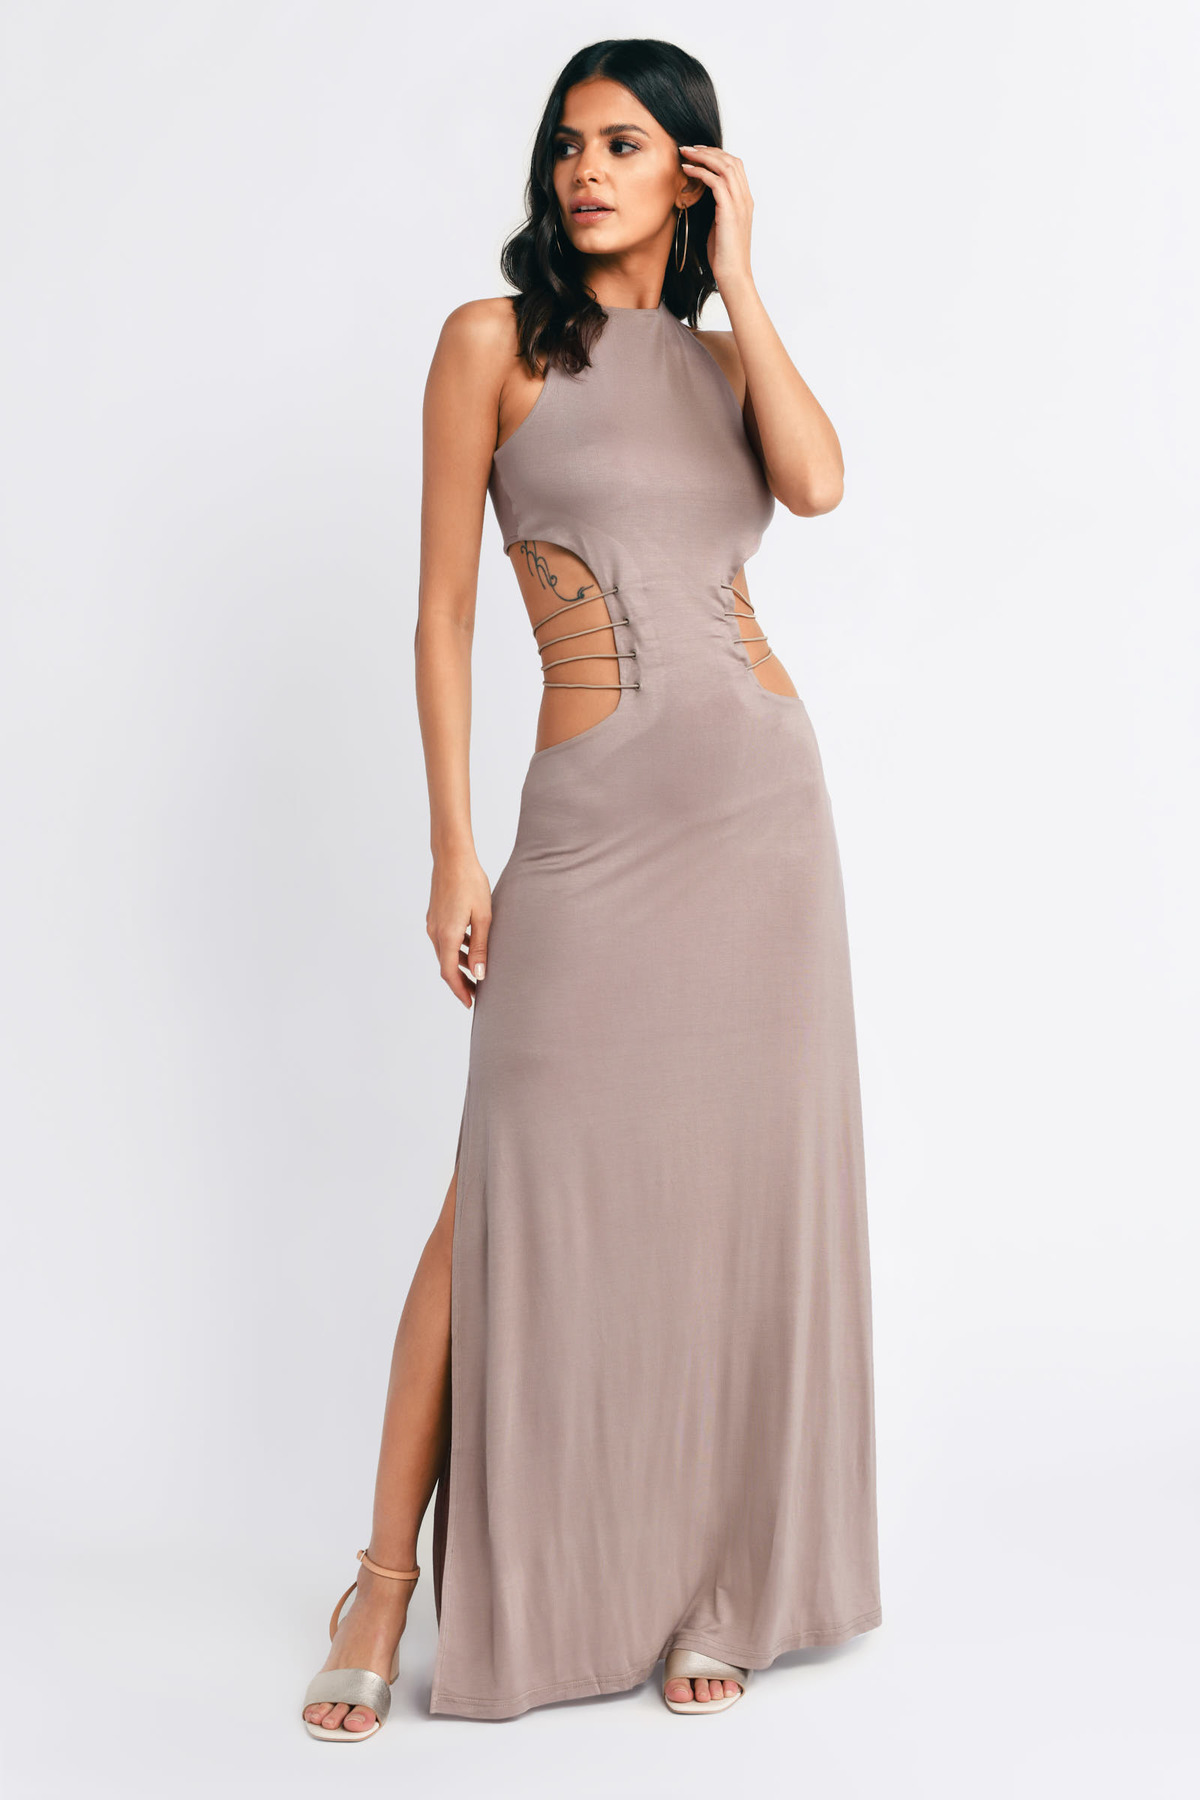 New Years Eve Maxi Dresses Under $50 - Shop New Years Eve Maxi ...